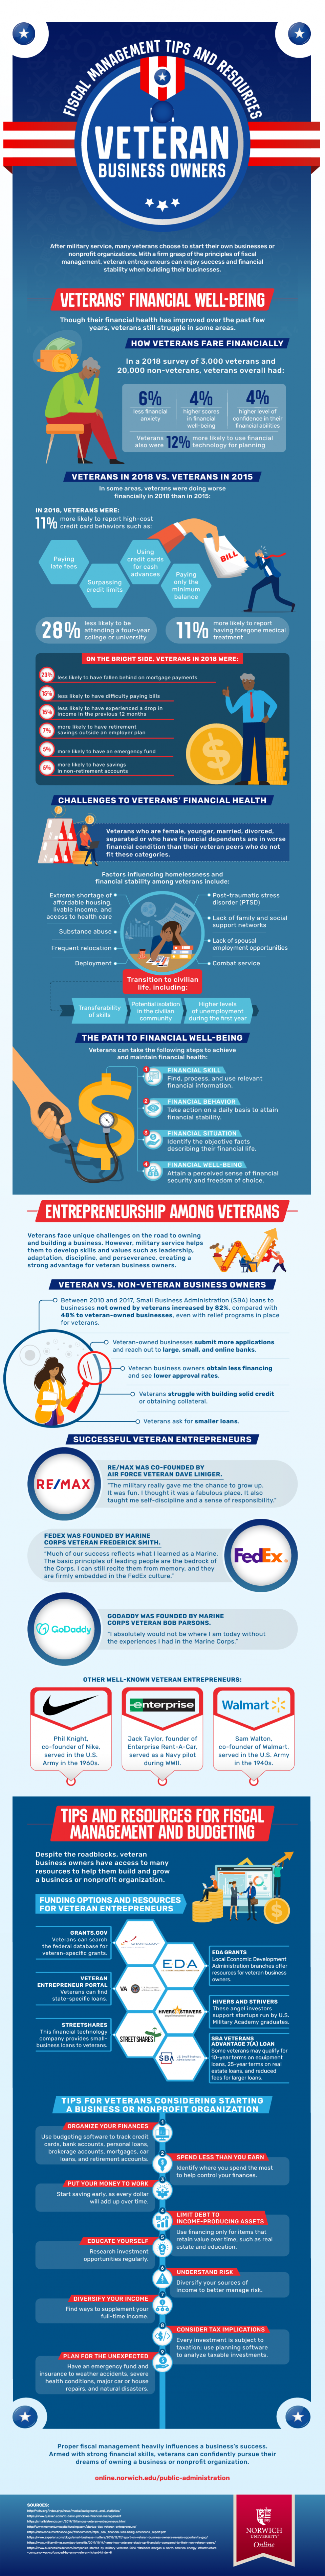 Resources and information to help veterans establish a post-military career business